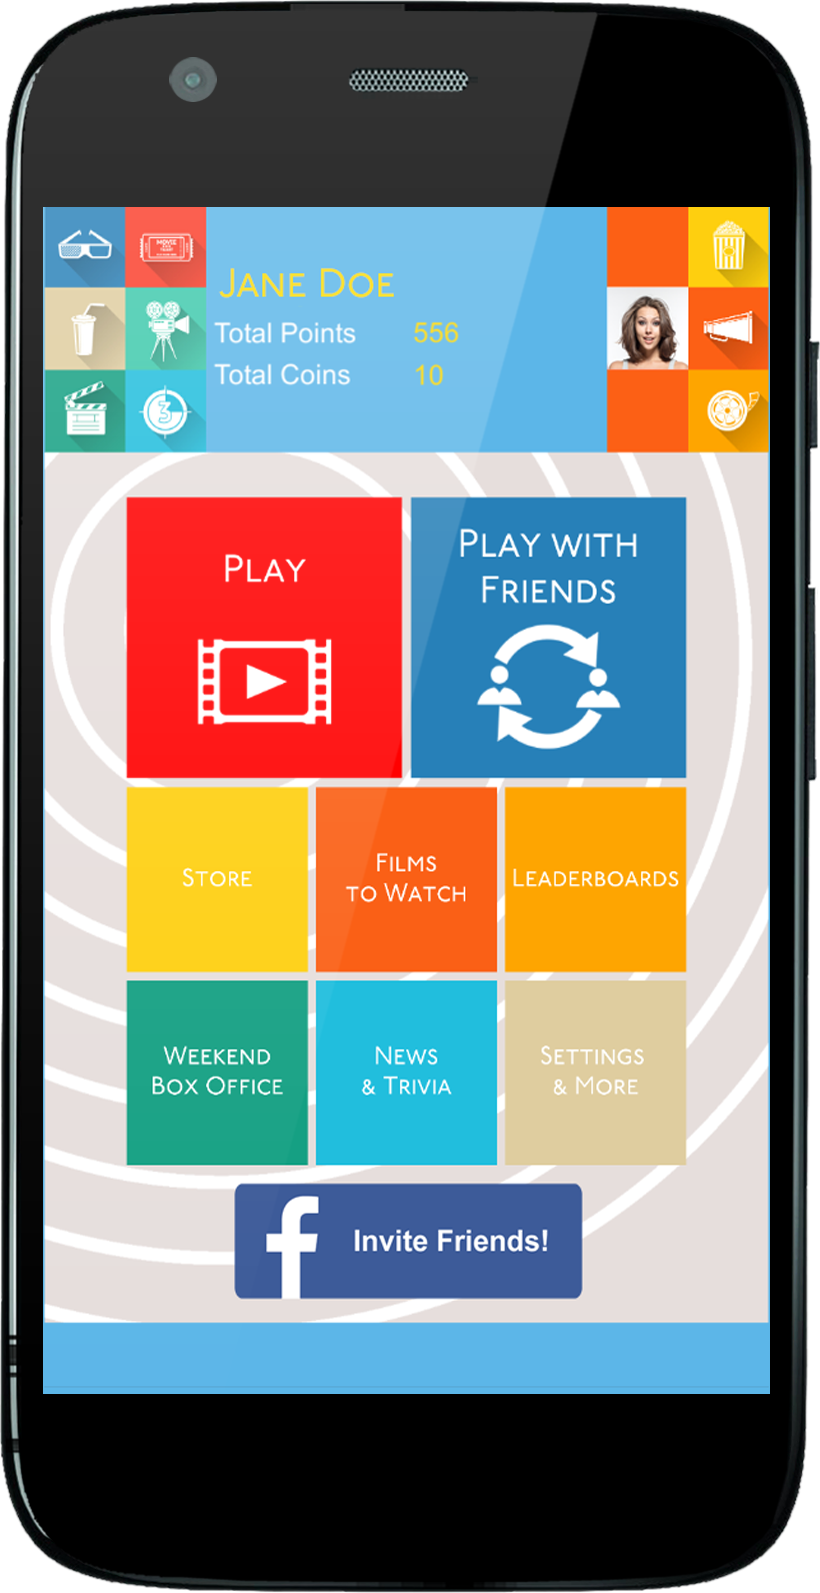 THE FILM QUIZ, The ONLY Mobile Game For Film Buffs Is